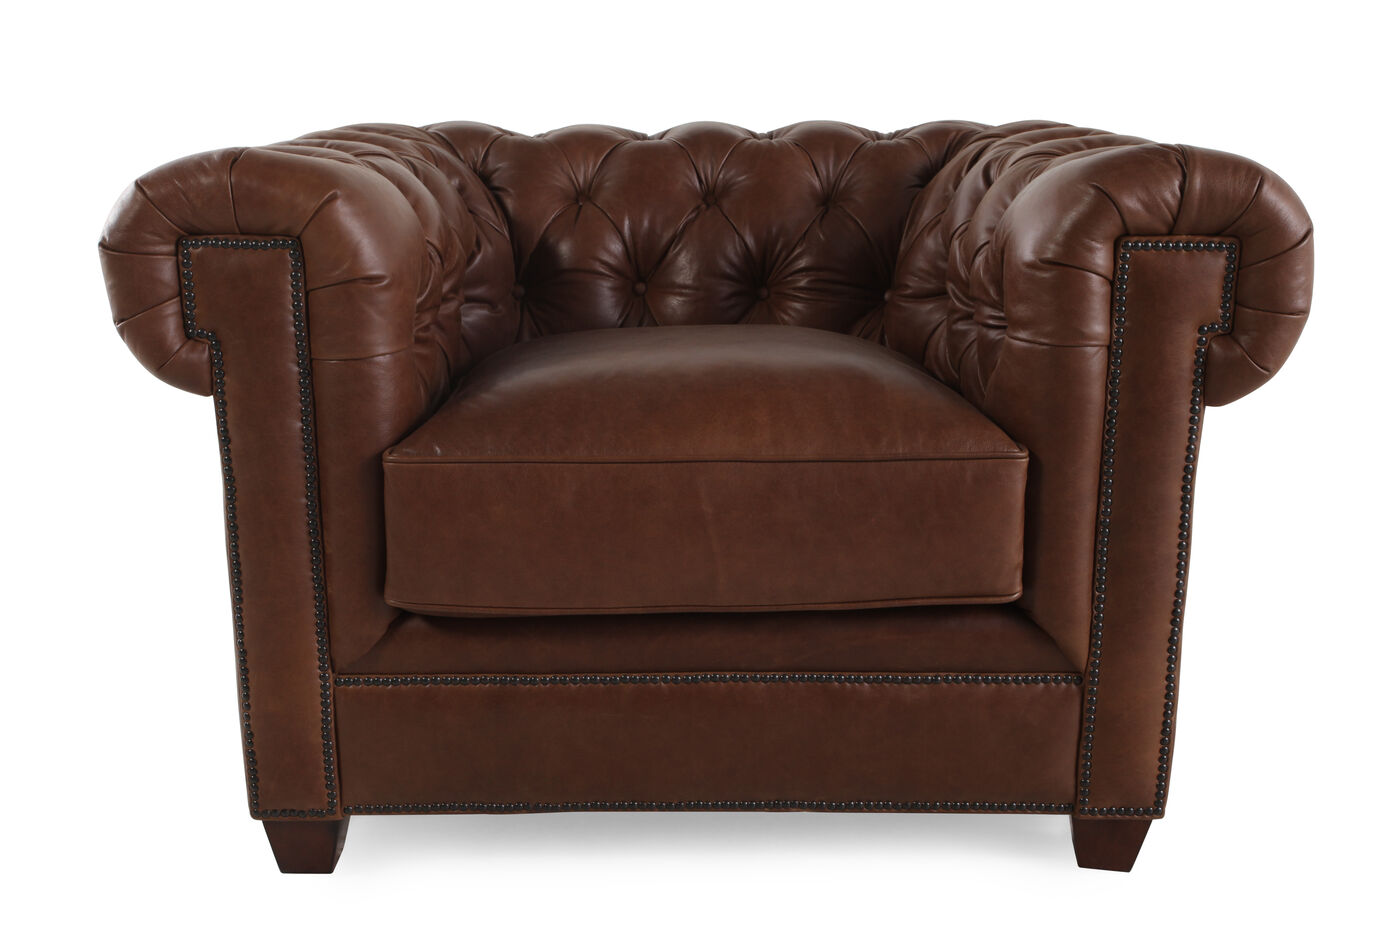 button tufted leather 42 chair in russet brown mathis. Black Bedroom Furniture Sets. Home Design Ideas